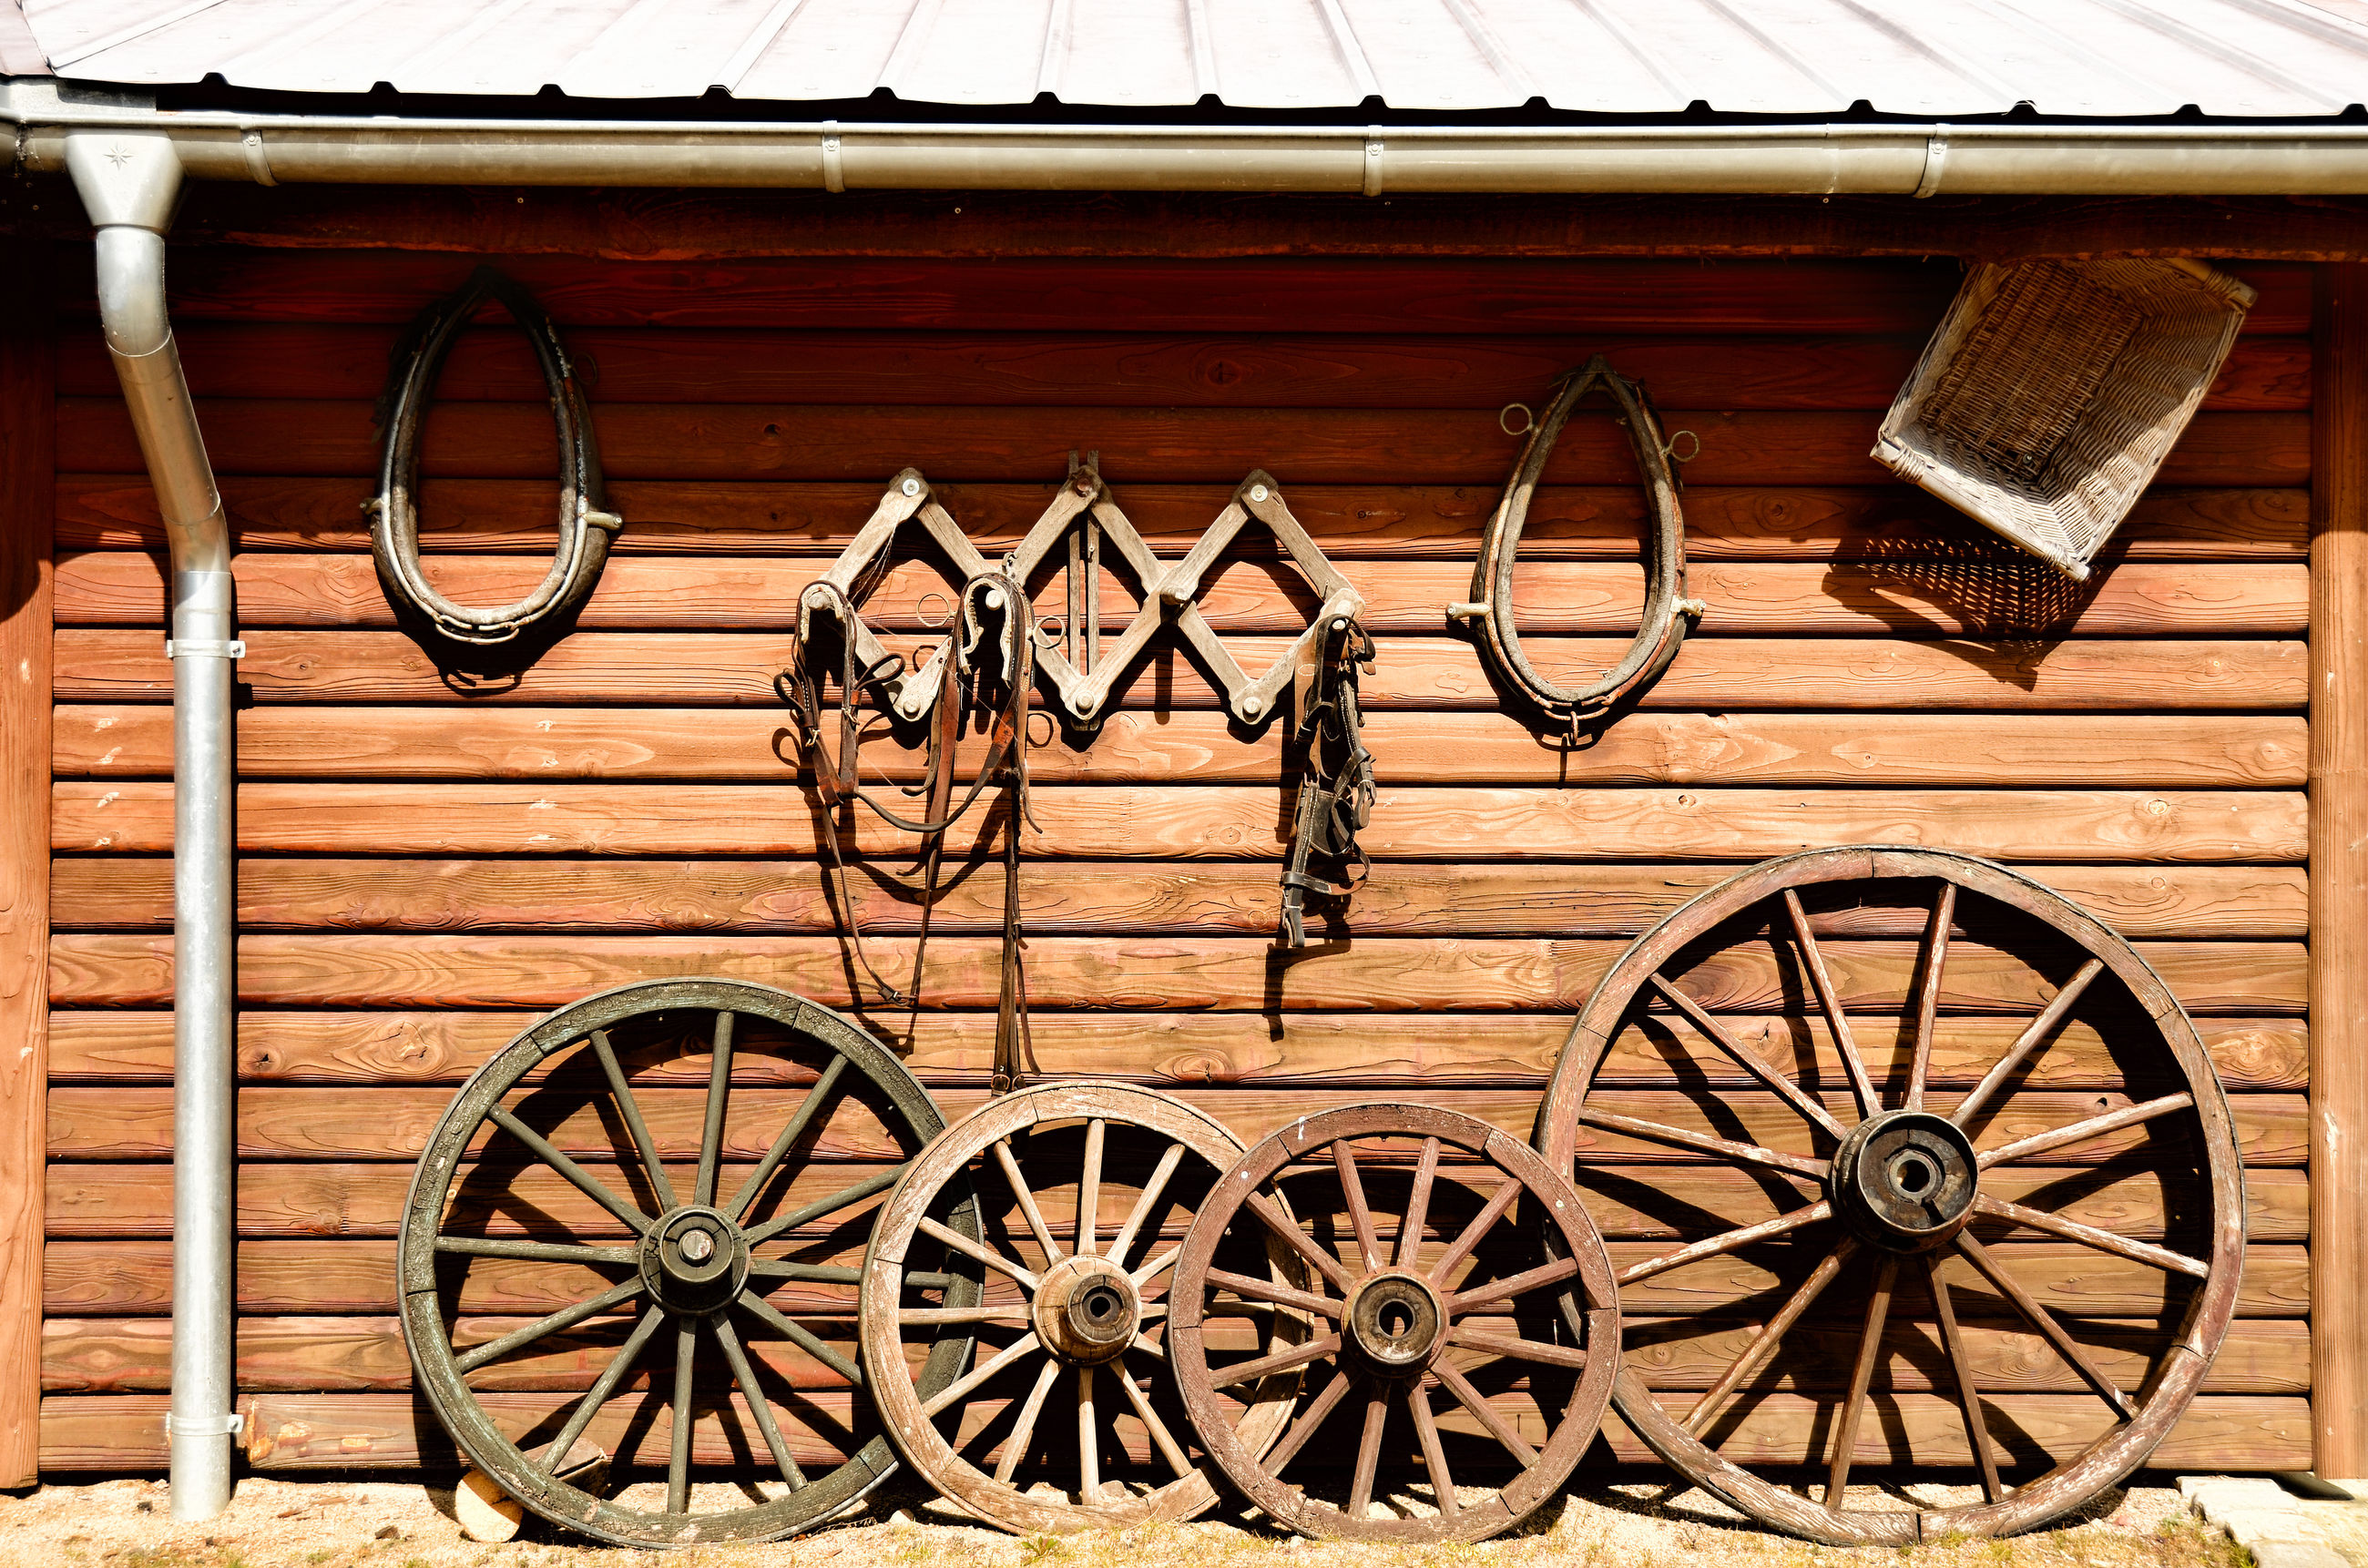 wheel, wood - material, day, outdoors, old-fashioned, no people, built structure, transportation, building exterior